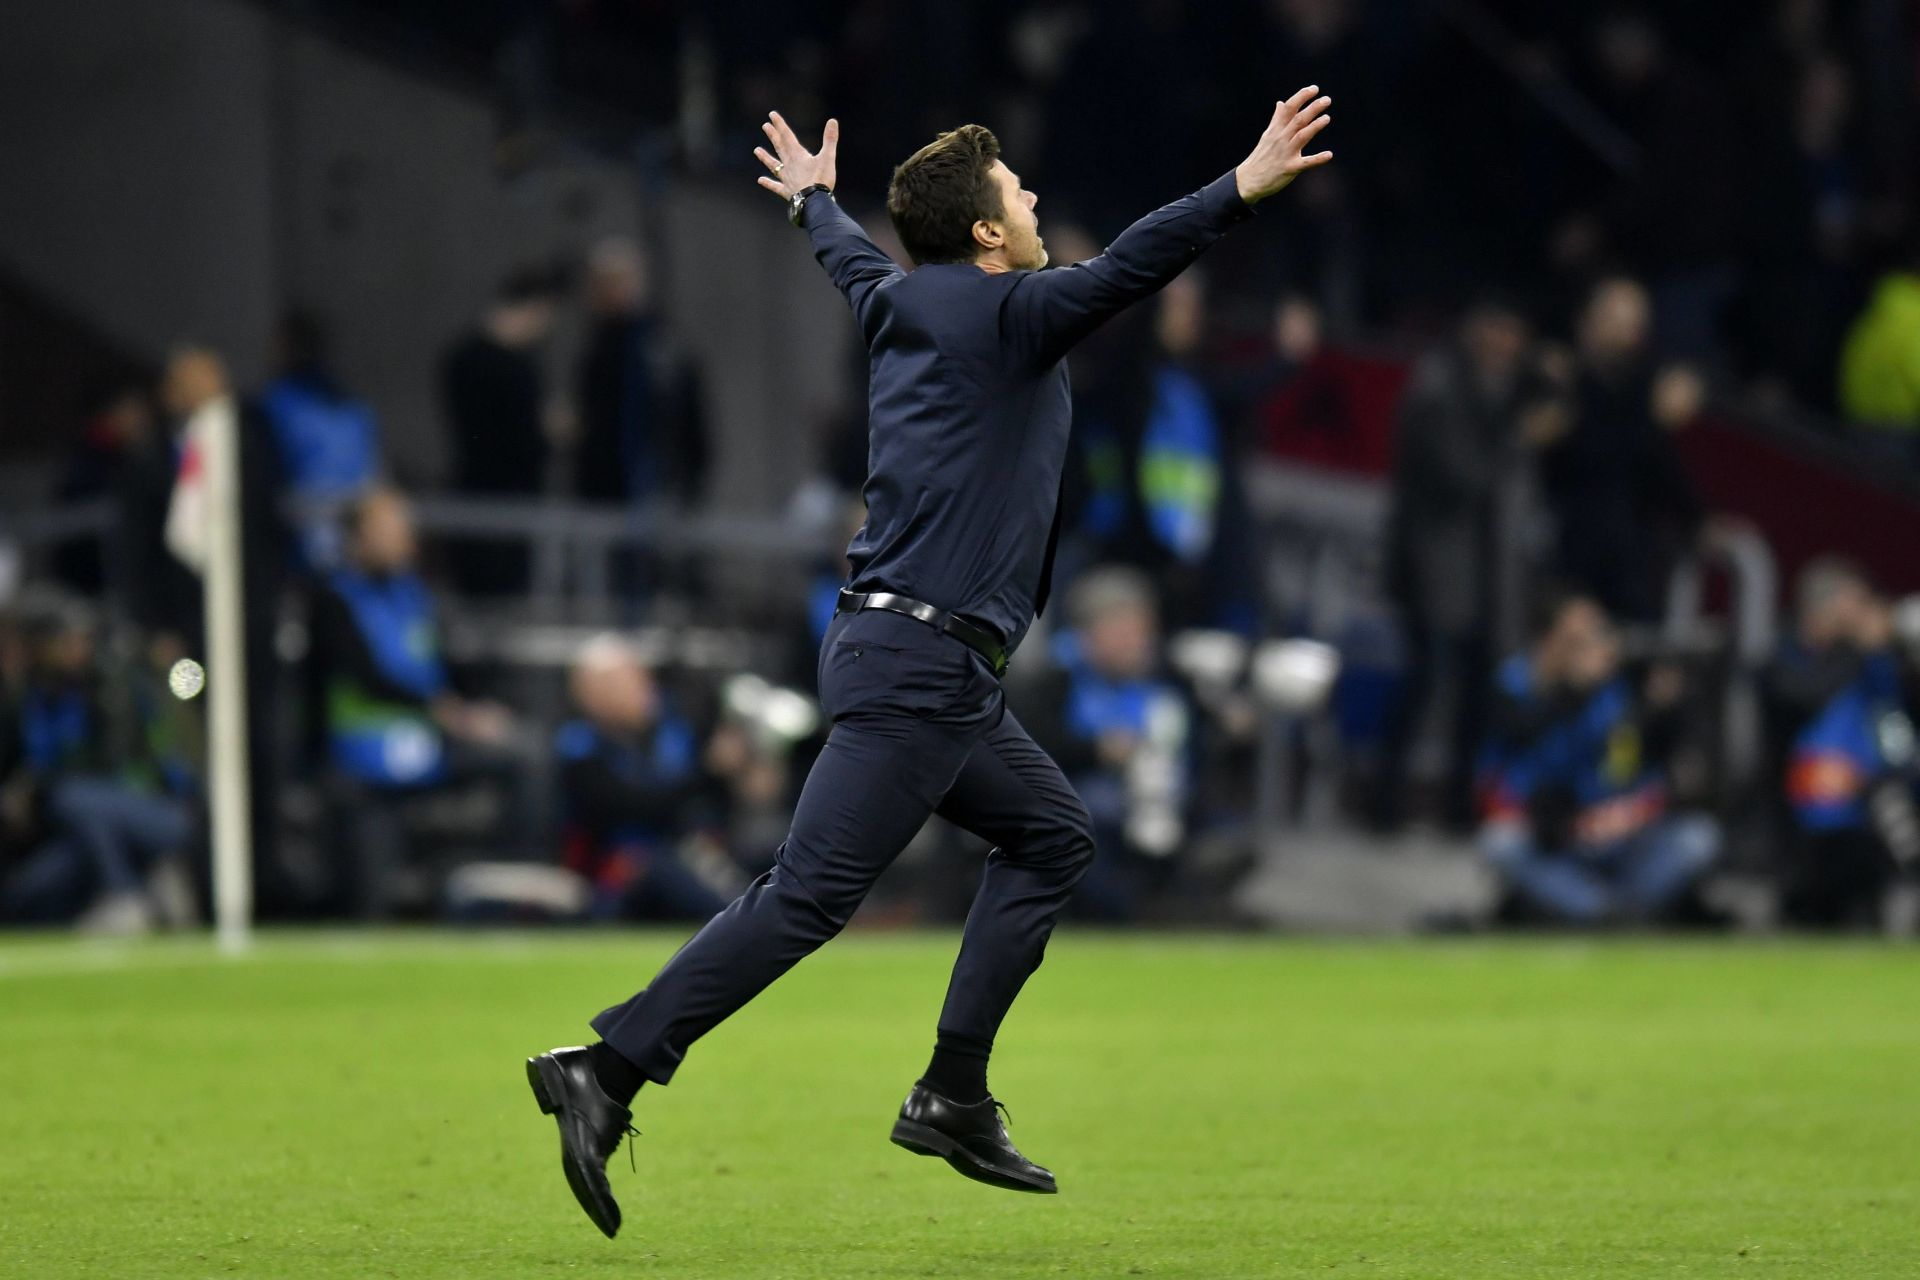 Football: Uefa Champions League 2018/2019 semi final Ajax-Tottenham Hotspur on May 8, 2019 in Amsterdam, The Netherlands Coach Mauricio Pochettino of Tottenham Hotspur (Photo by Sander Chamid/SCS/AFLO) FOT. AFLO / NEWSPIX.PL POLAND ONLY !!! --- Newspix.pl *** Local Caption *** www.newspix.pl mail us: info@newspix.pl call us: 0048 022 23 22 222 --- Polish Picture Agency by Ringier Axel Springer Poland